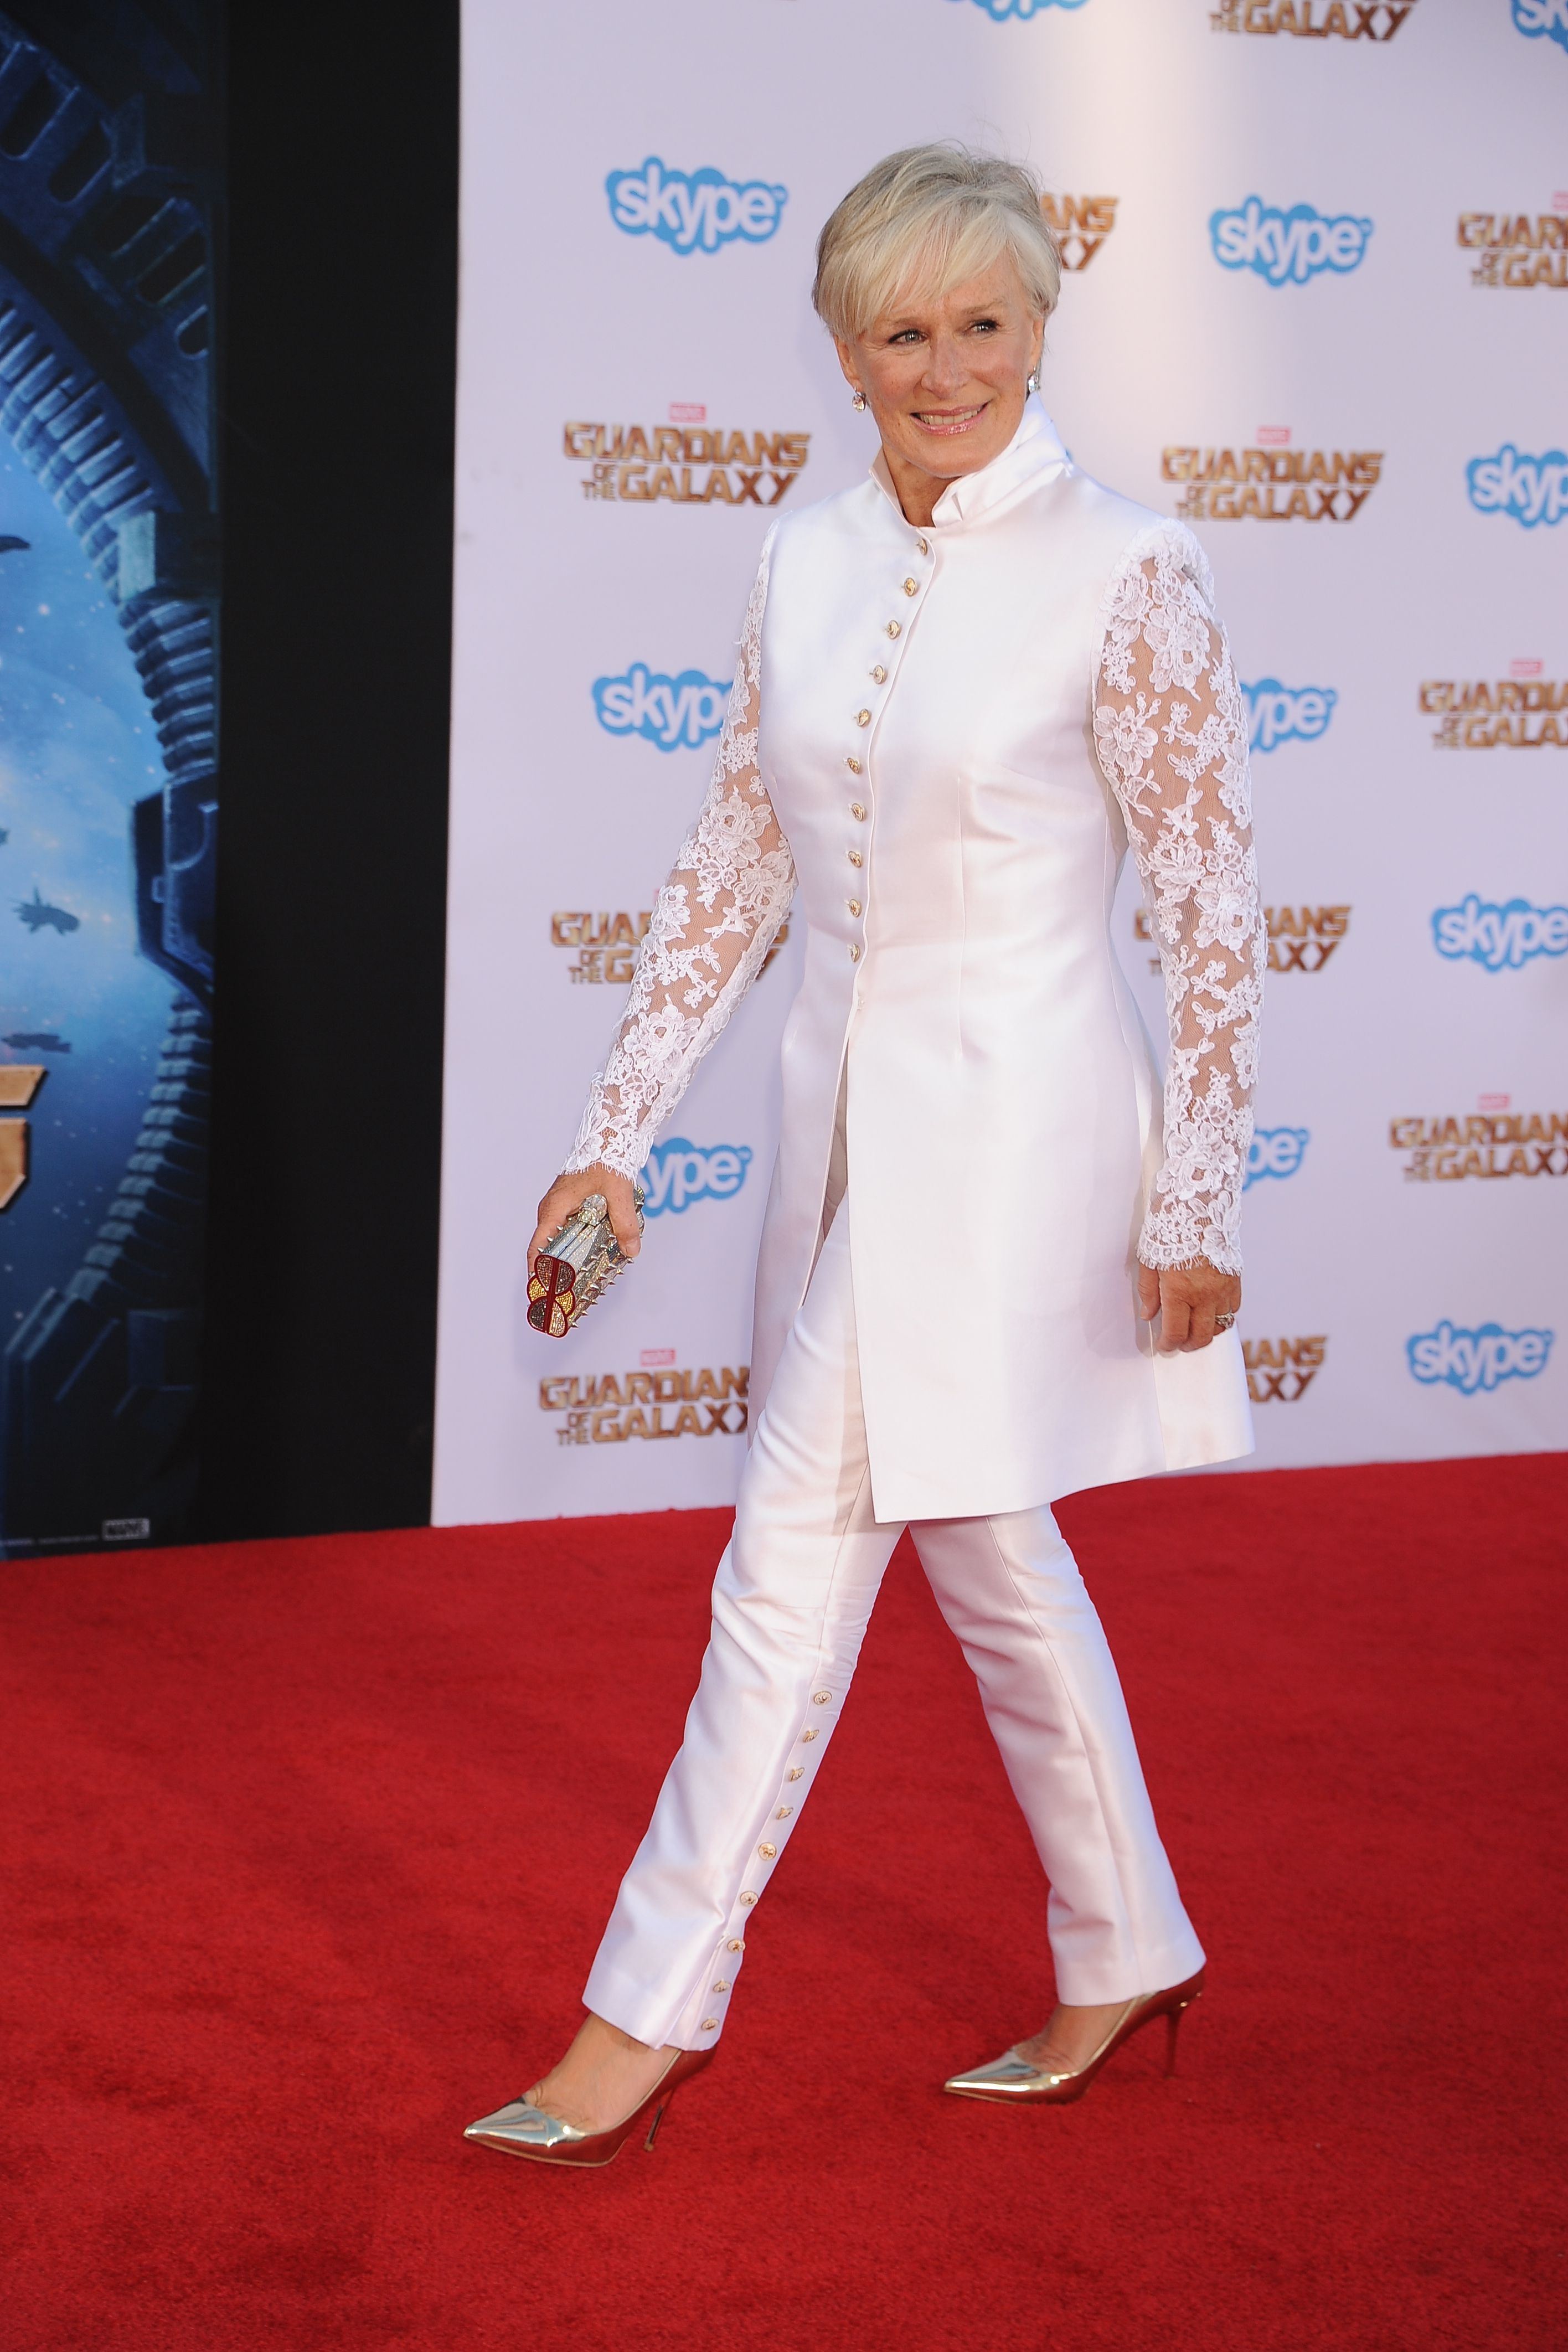 Glenn Close looked stunning at the Guardians of the Galaxy premiere in a white silk trouser suit with lace sleeves and gold button detailing. She paired the look with a gold clutch, earrings, and gold patent pumps.